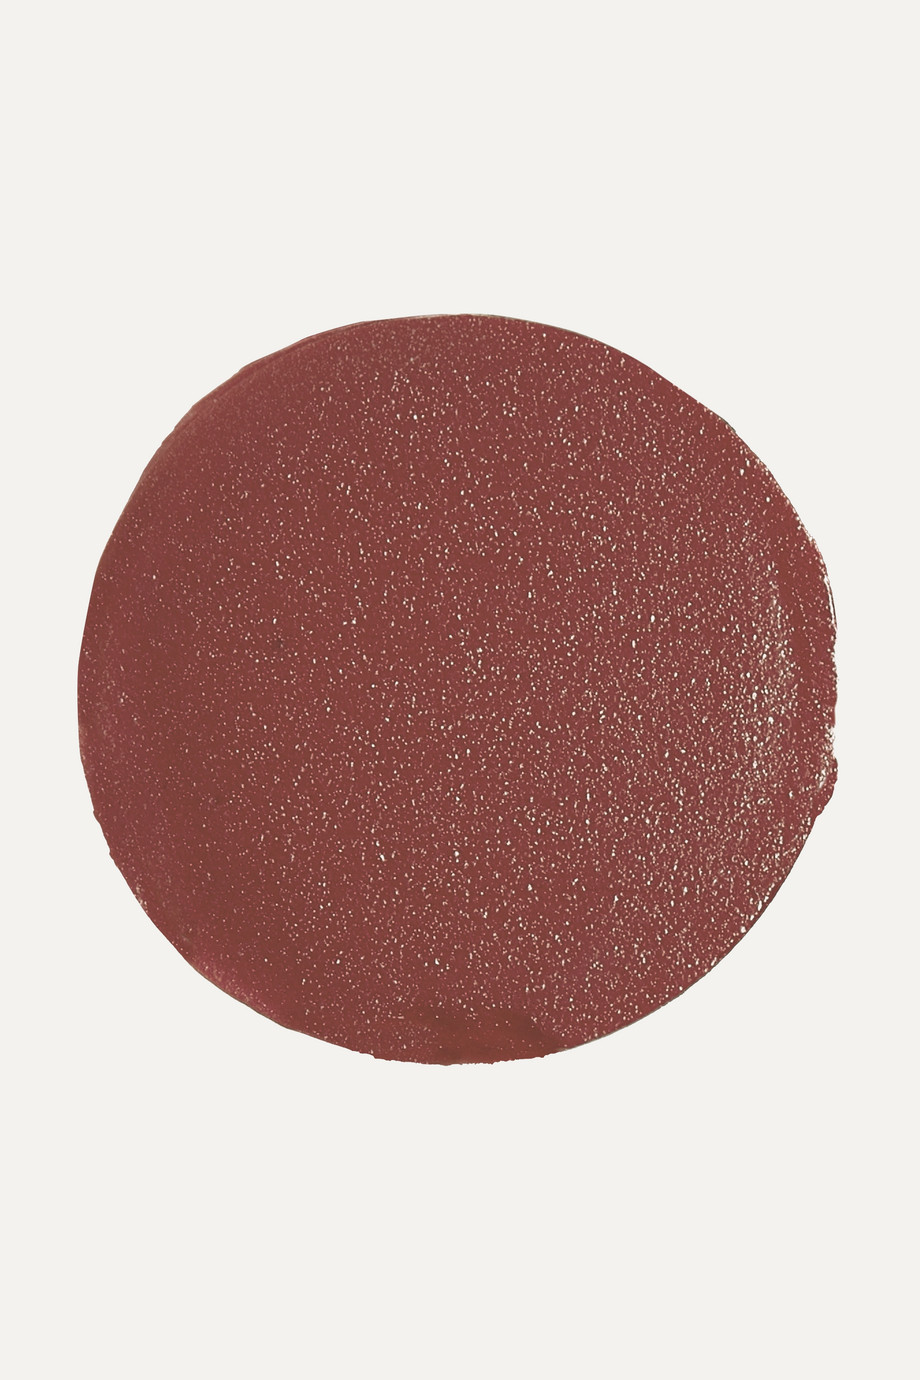 Gucci Beauty Rouge à Lèvres Voile - Mildred Rosewood 203